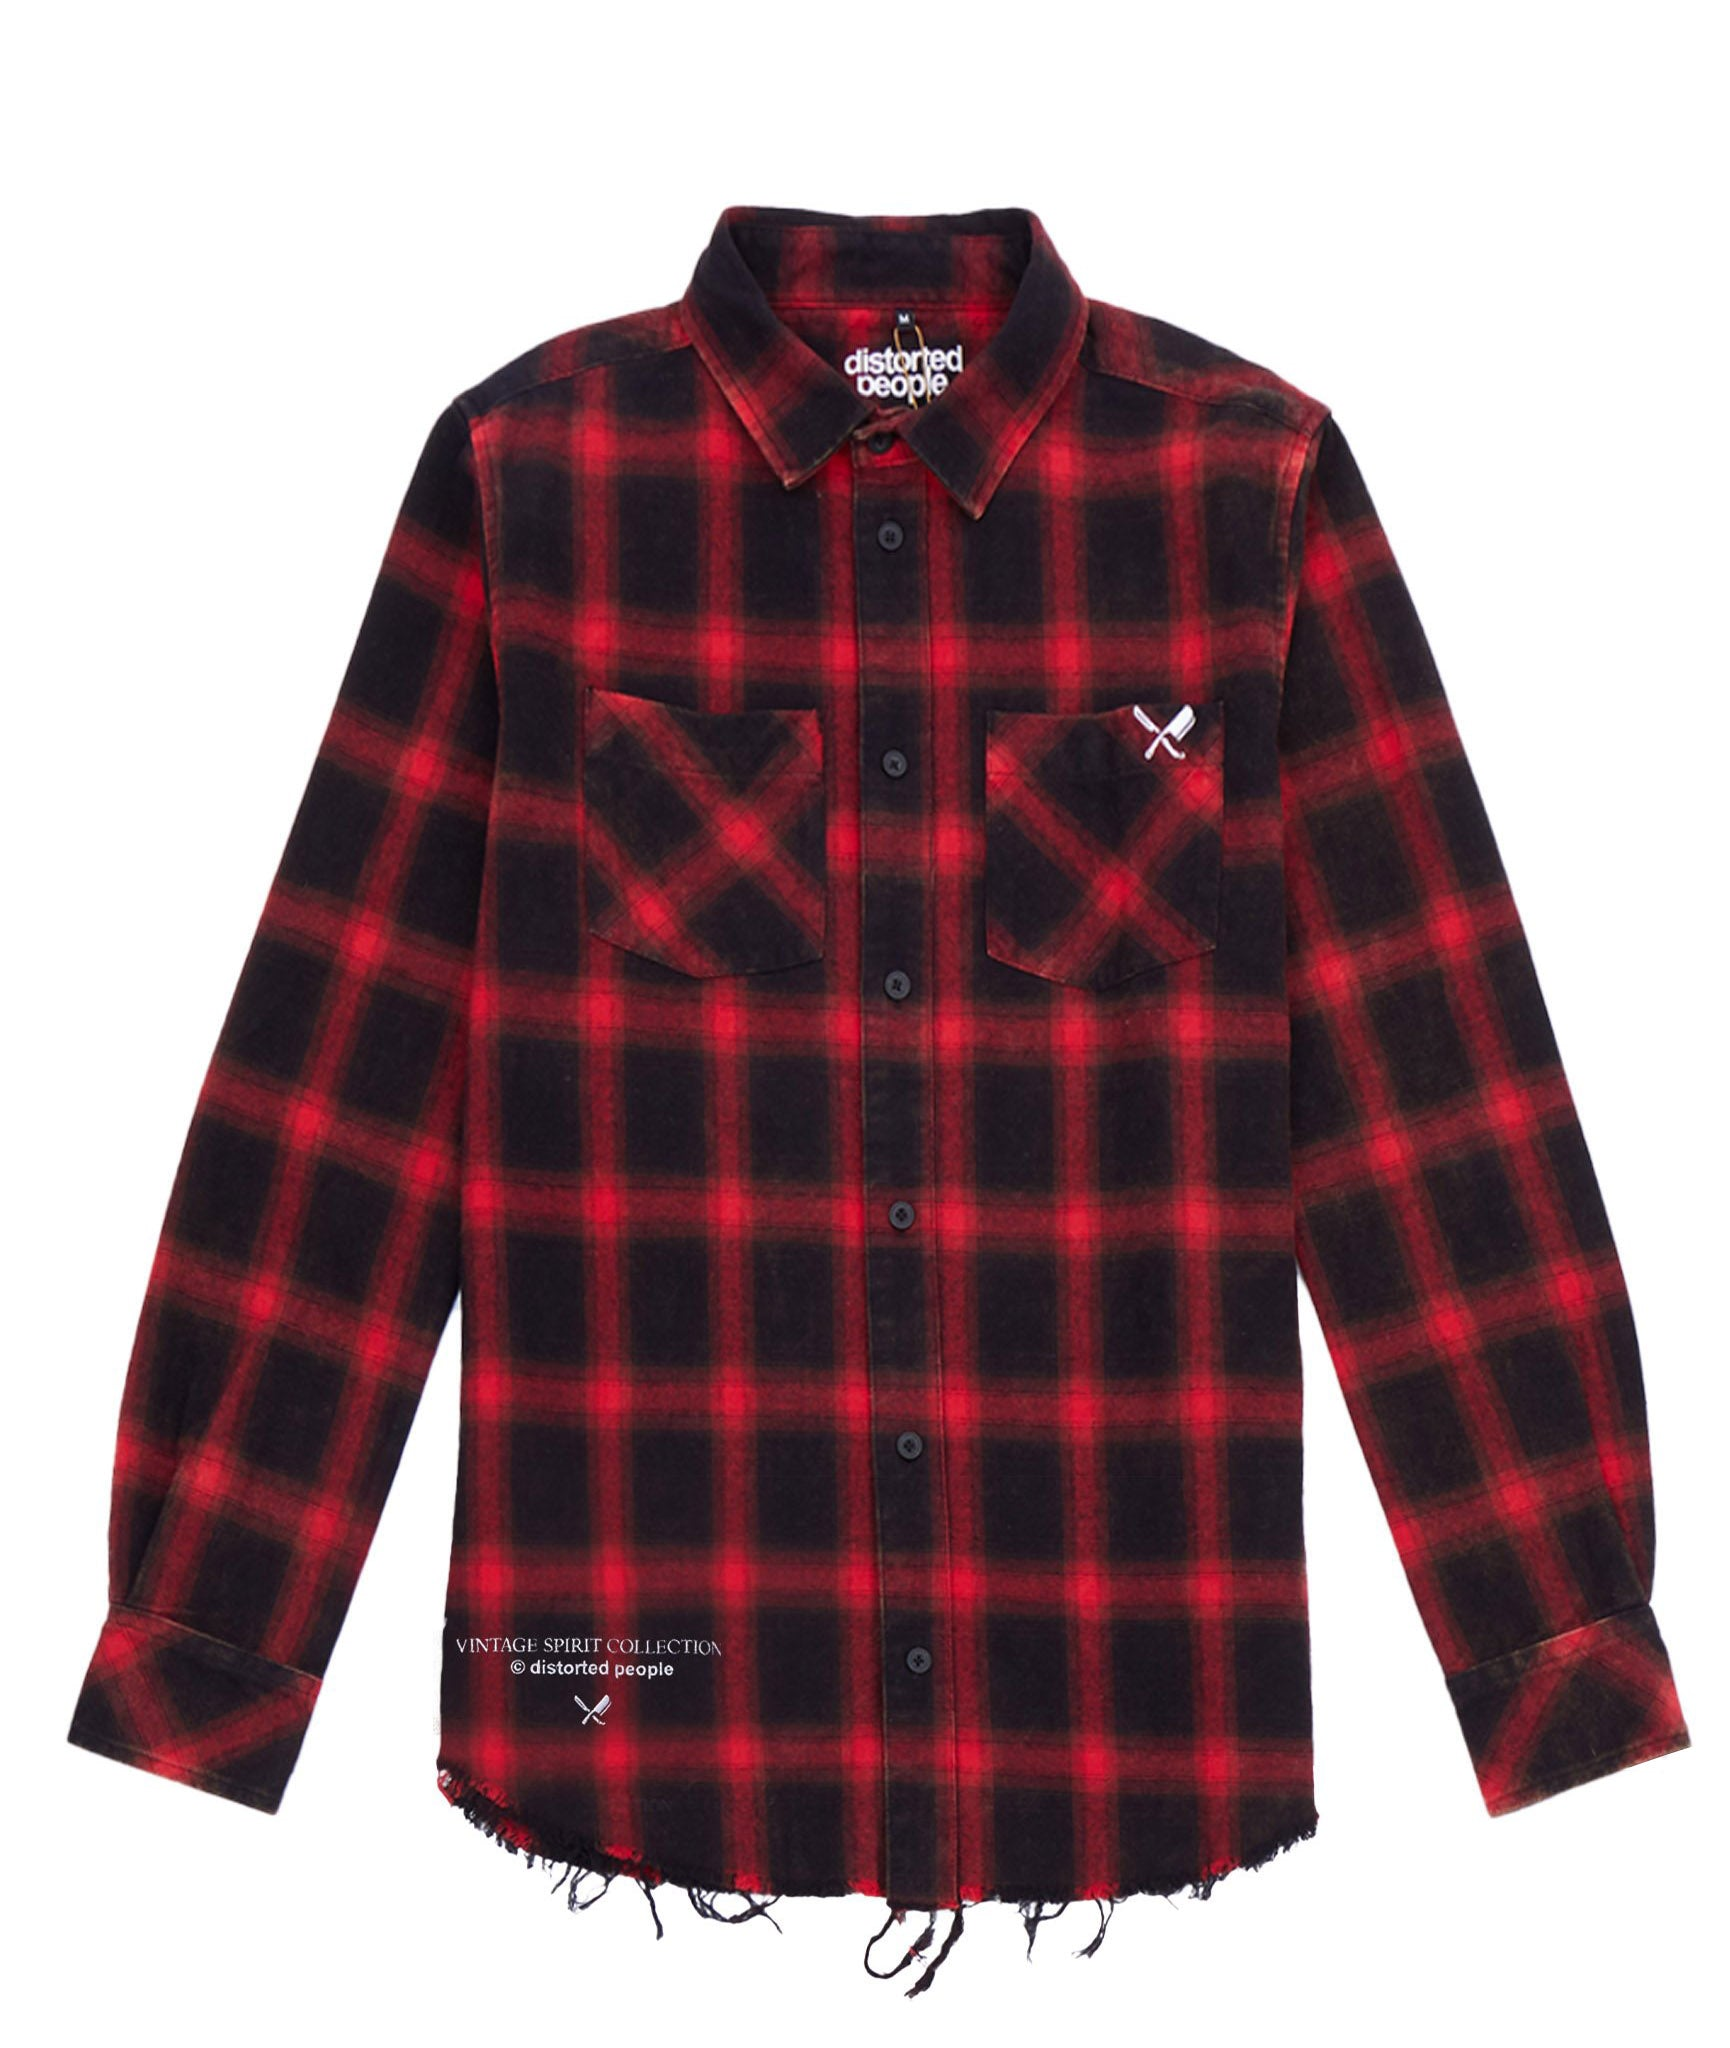 distorted people - Vintage Classic Flanell Longsleeve Shirt